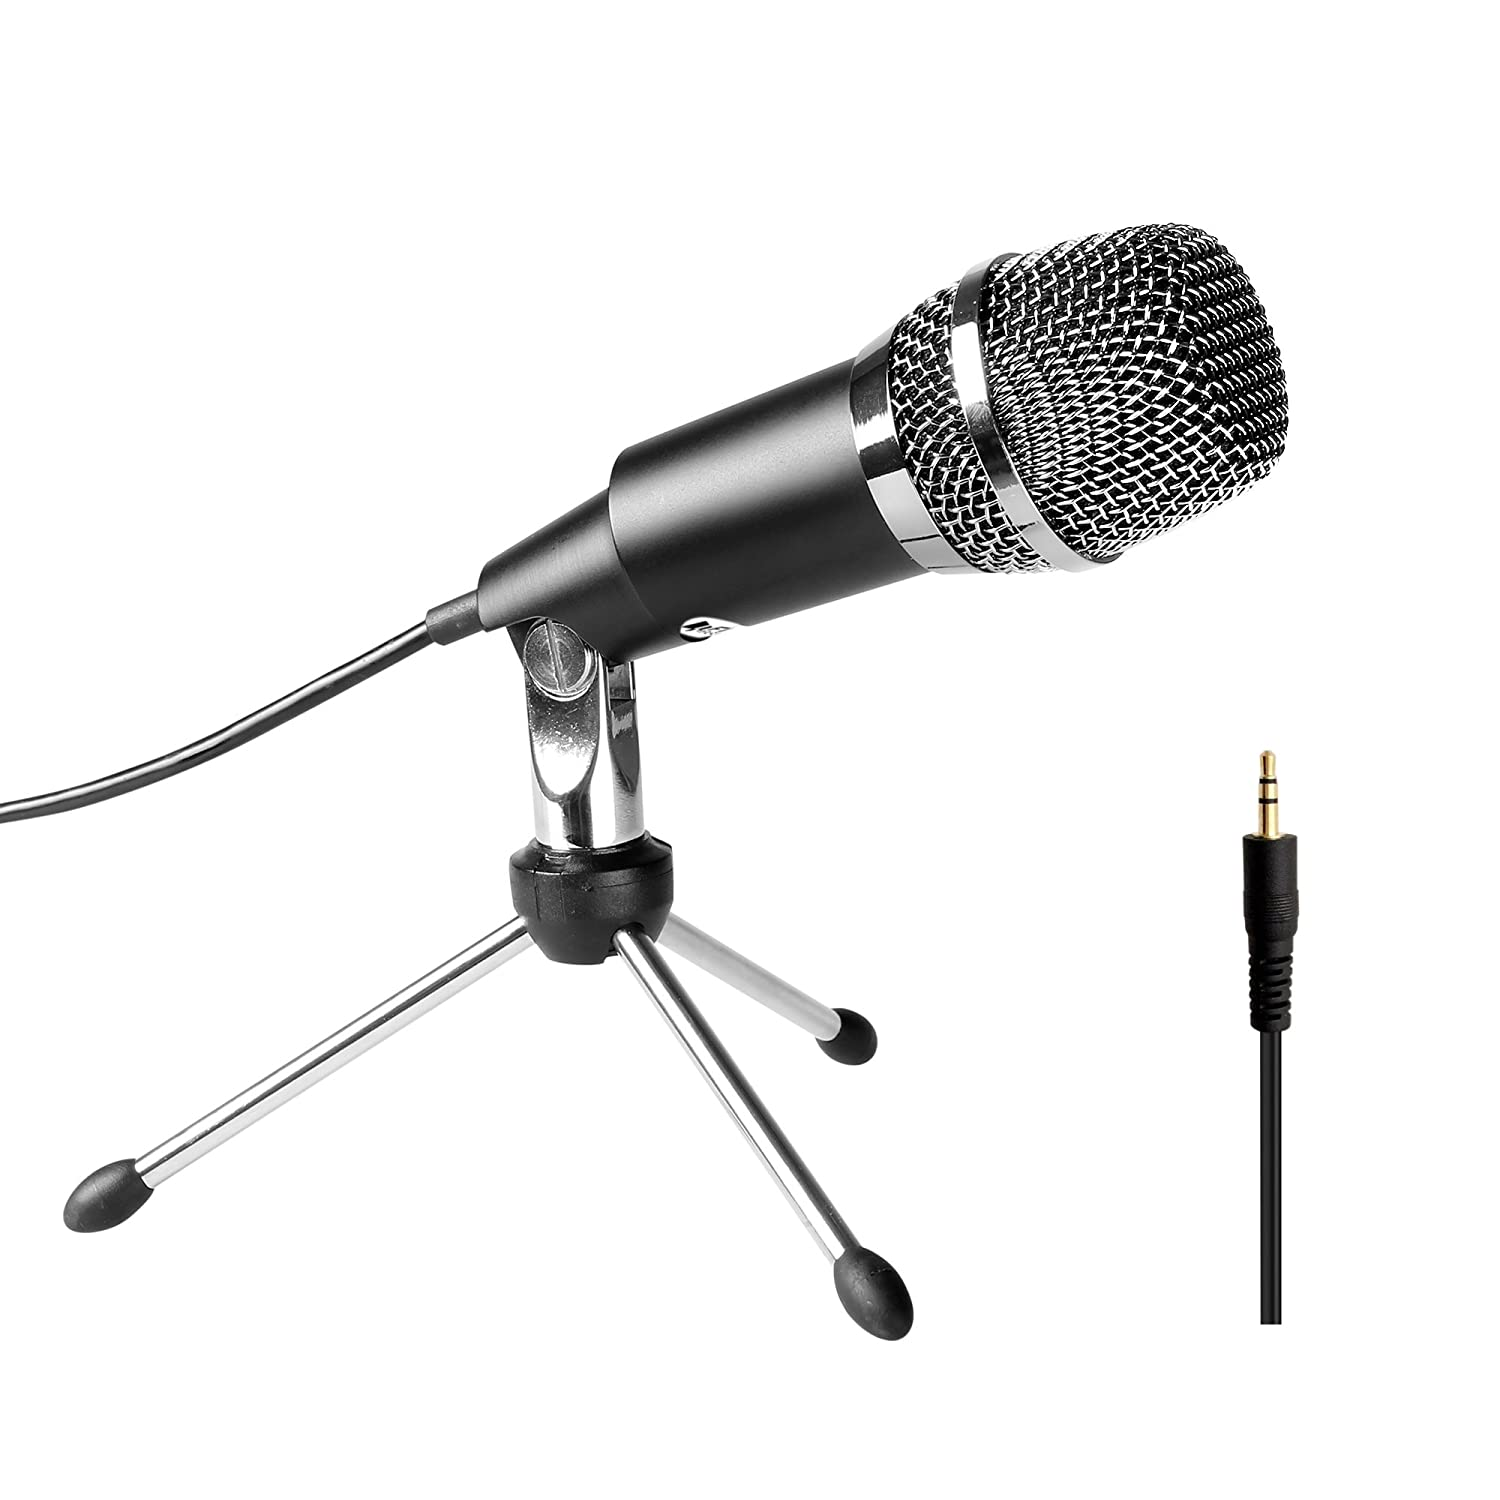 Fifine Microphone Condenser 3 5mm Plug And Play Microphones For Computer Pc Online Chatomnidirectional Microphone For Skypeyou Google Voice Search